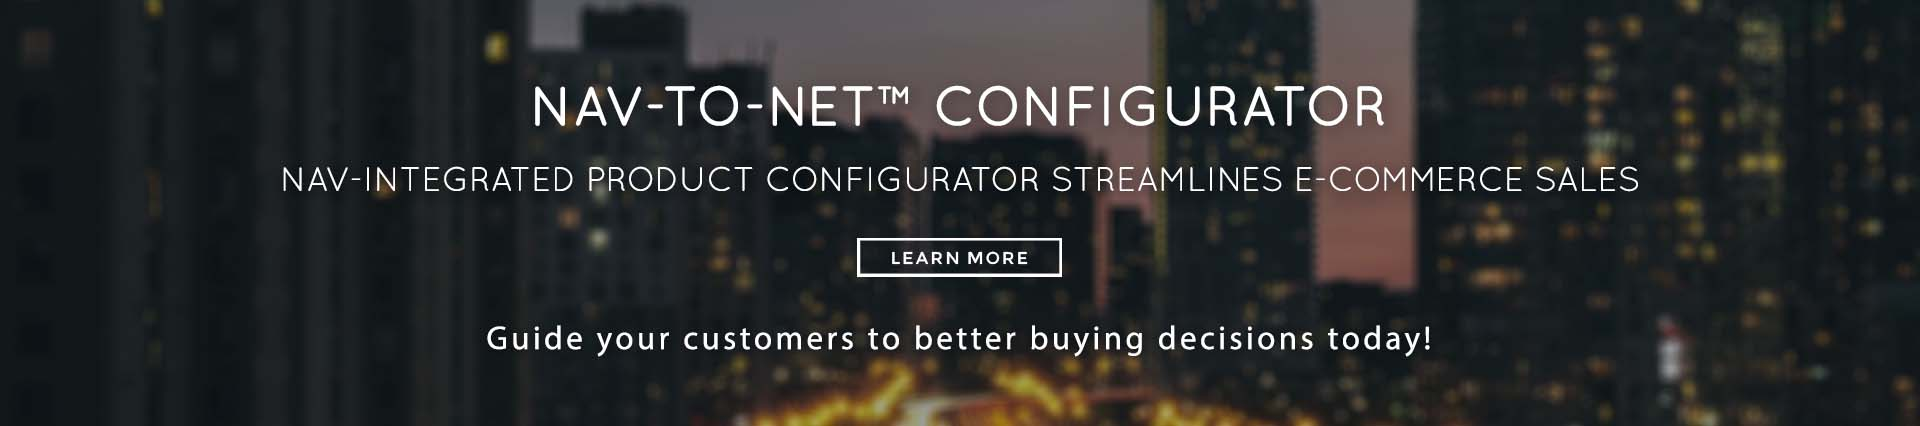 Nav-to-Net Configurator Feature